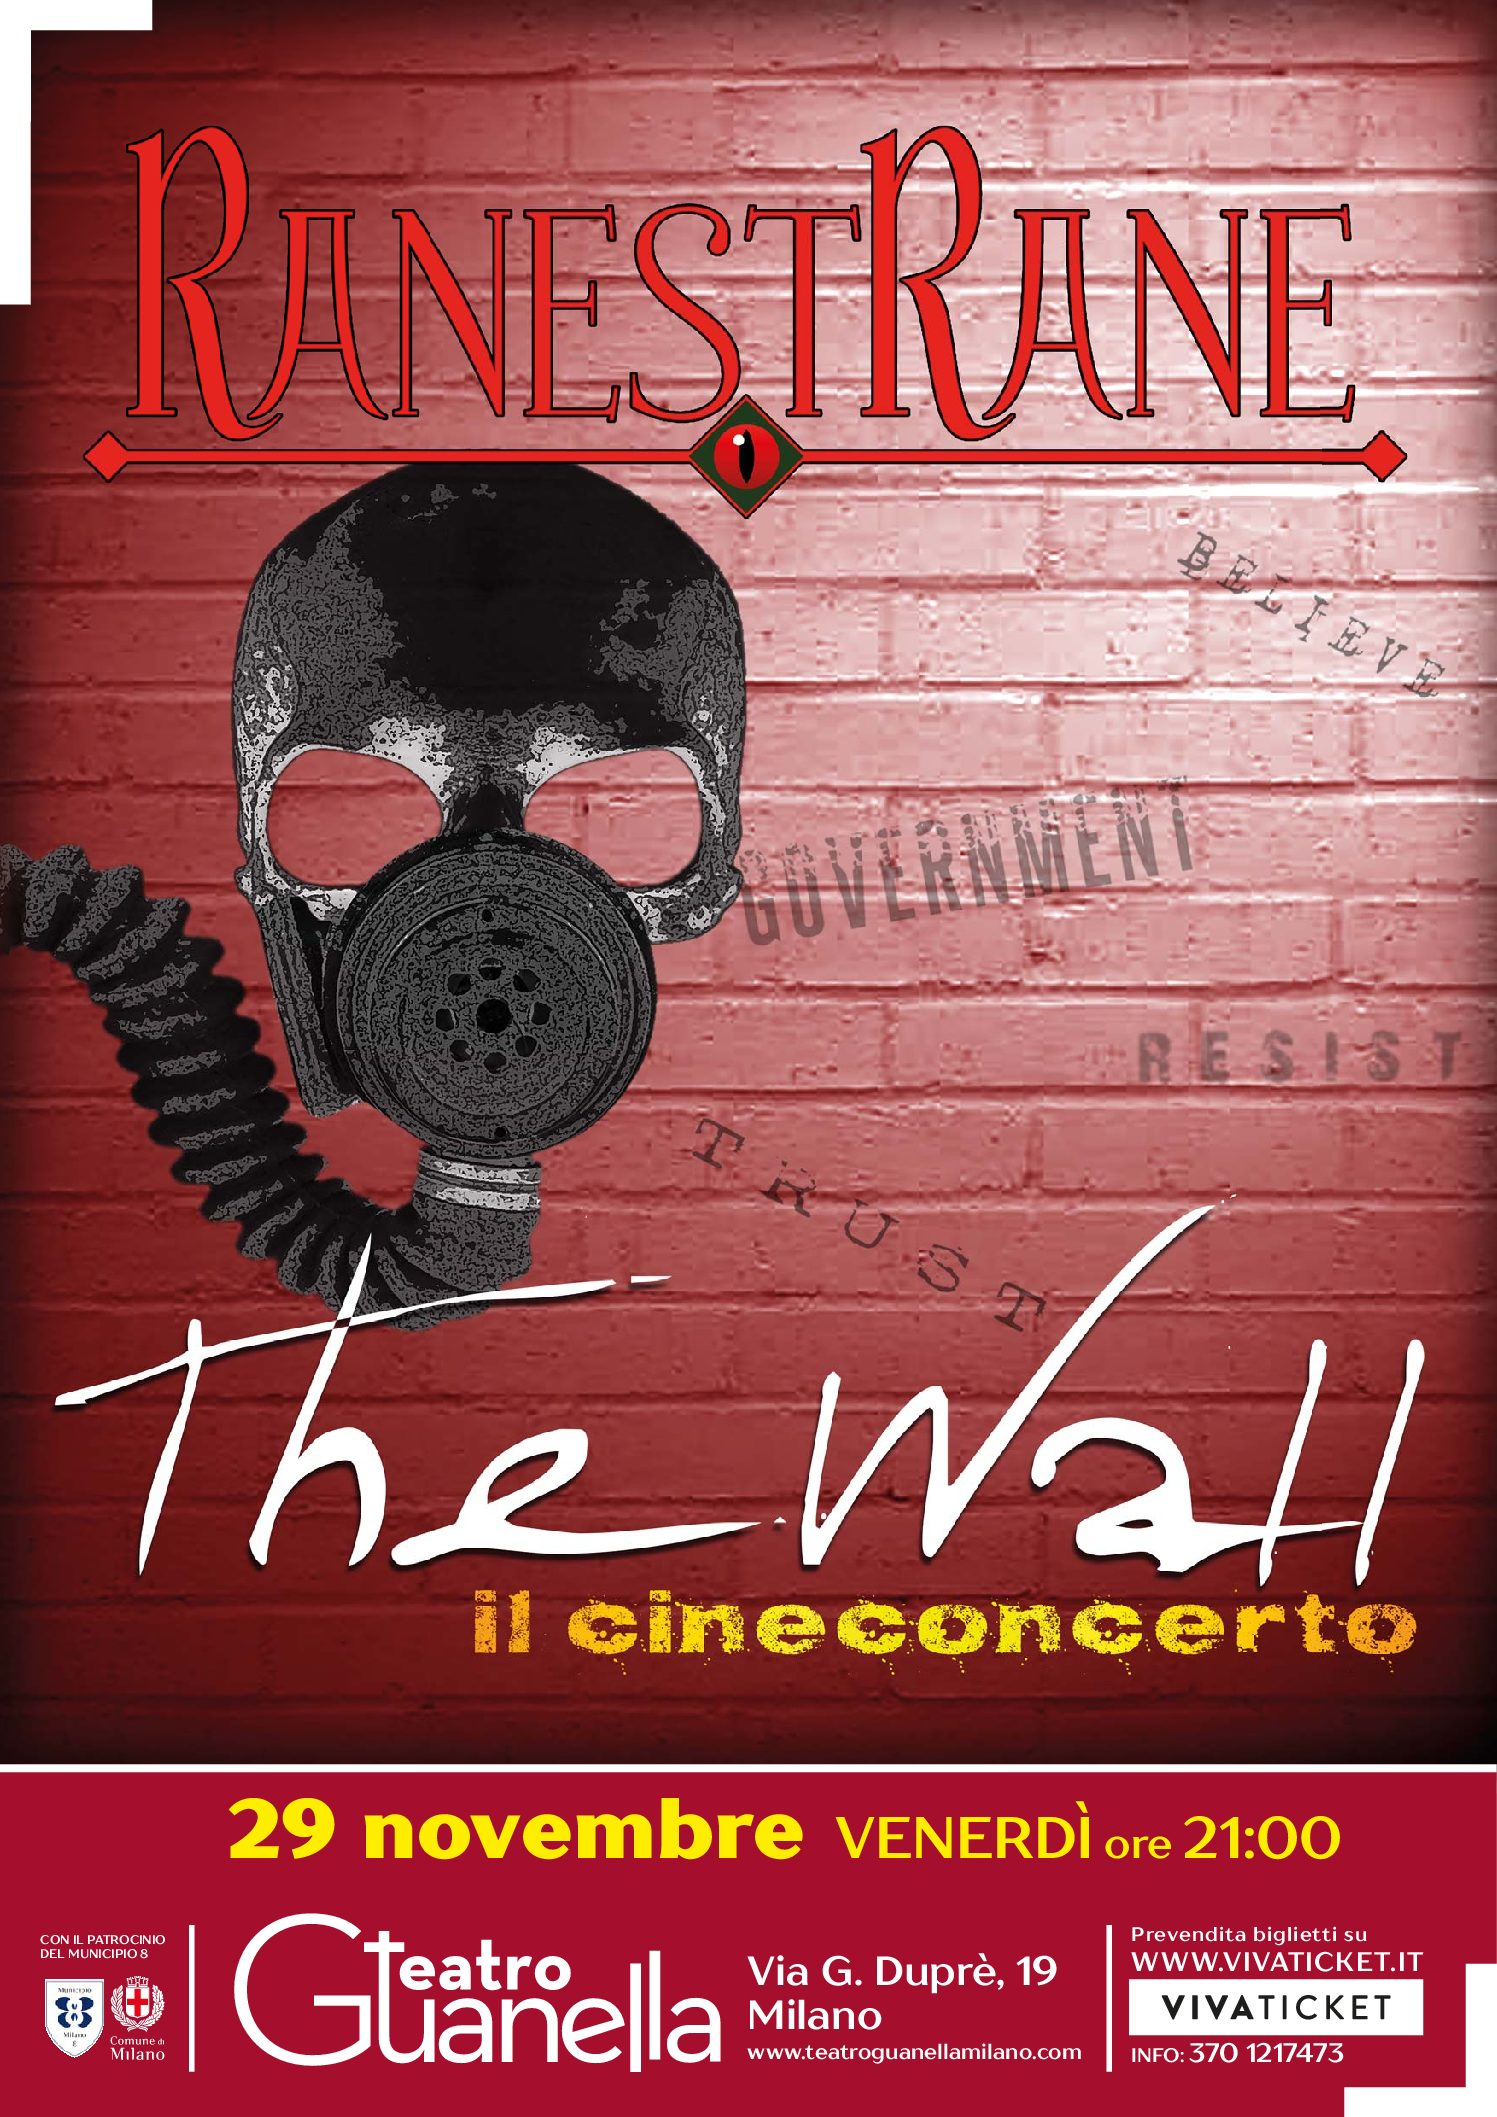 RanestRane PLAY THE WALL – THE CINECONCERT IN MILAN